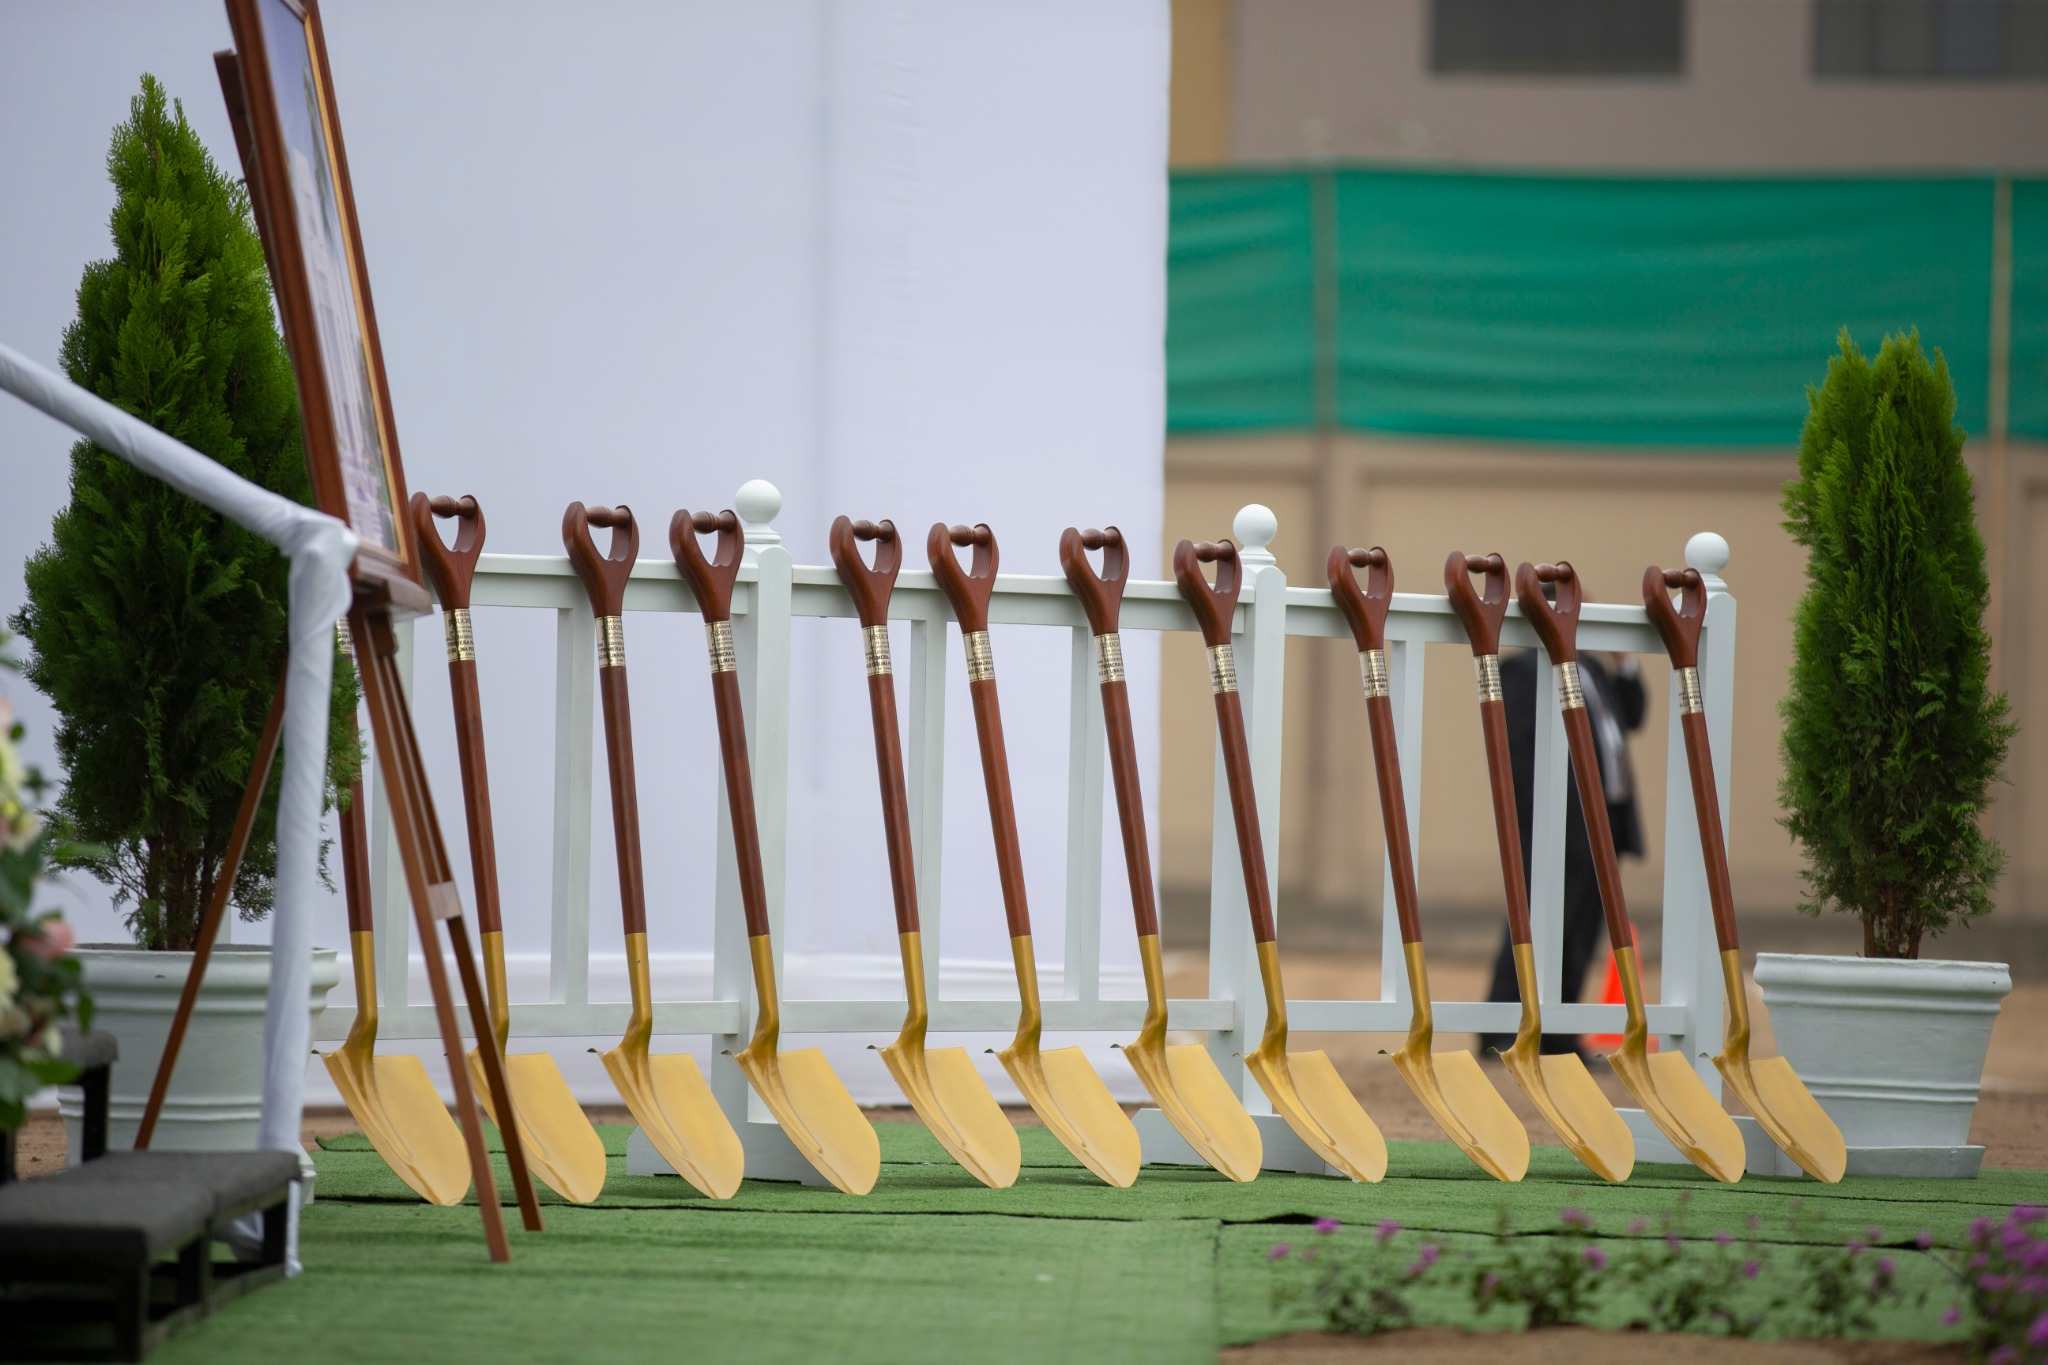 Shovels are lined up for the groundbreaking ceremony of the Lima Peru Los Olivos Temple on Saturday, June 8, 2019.